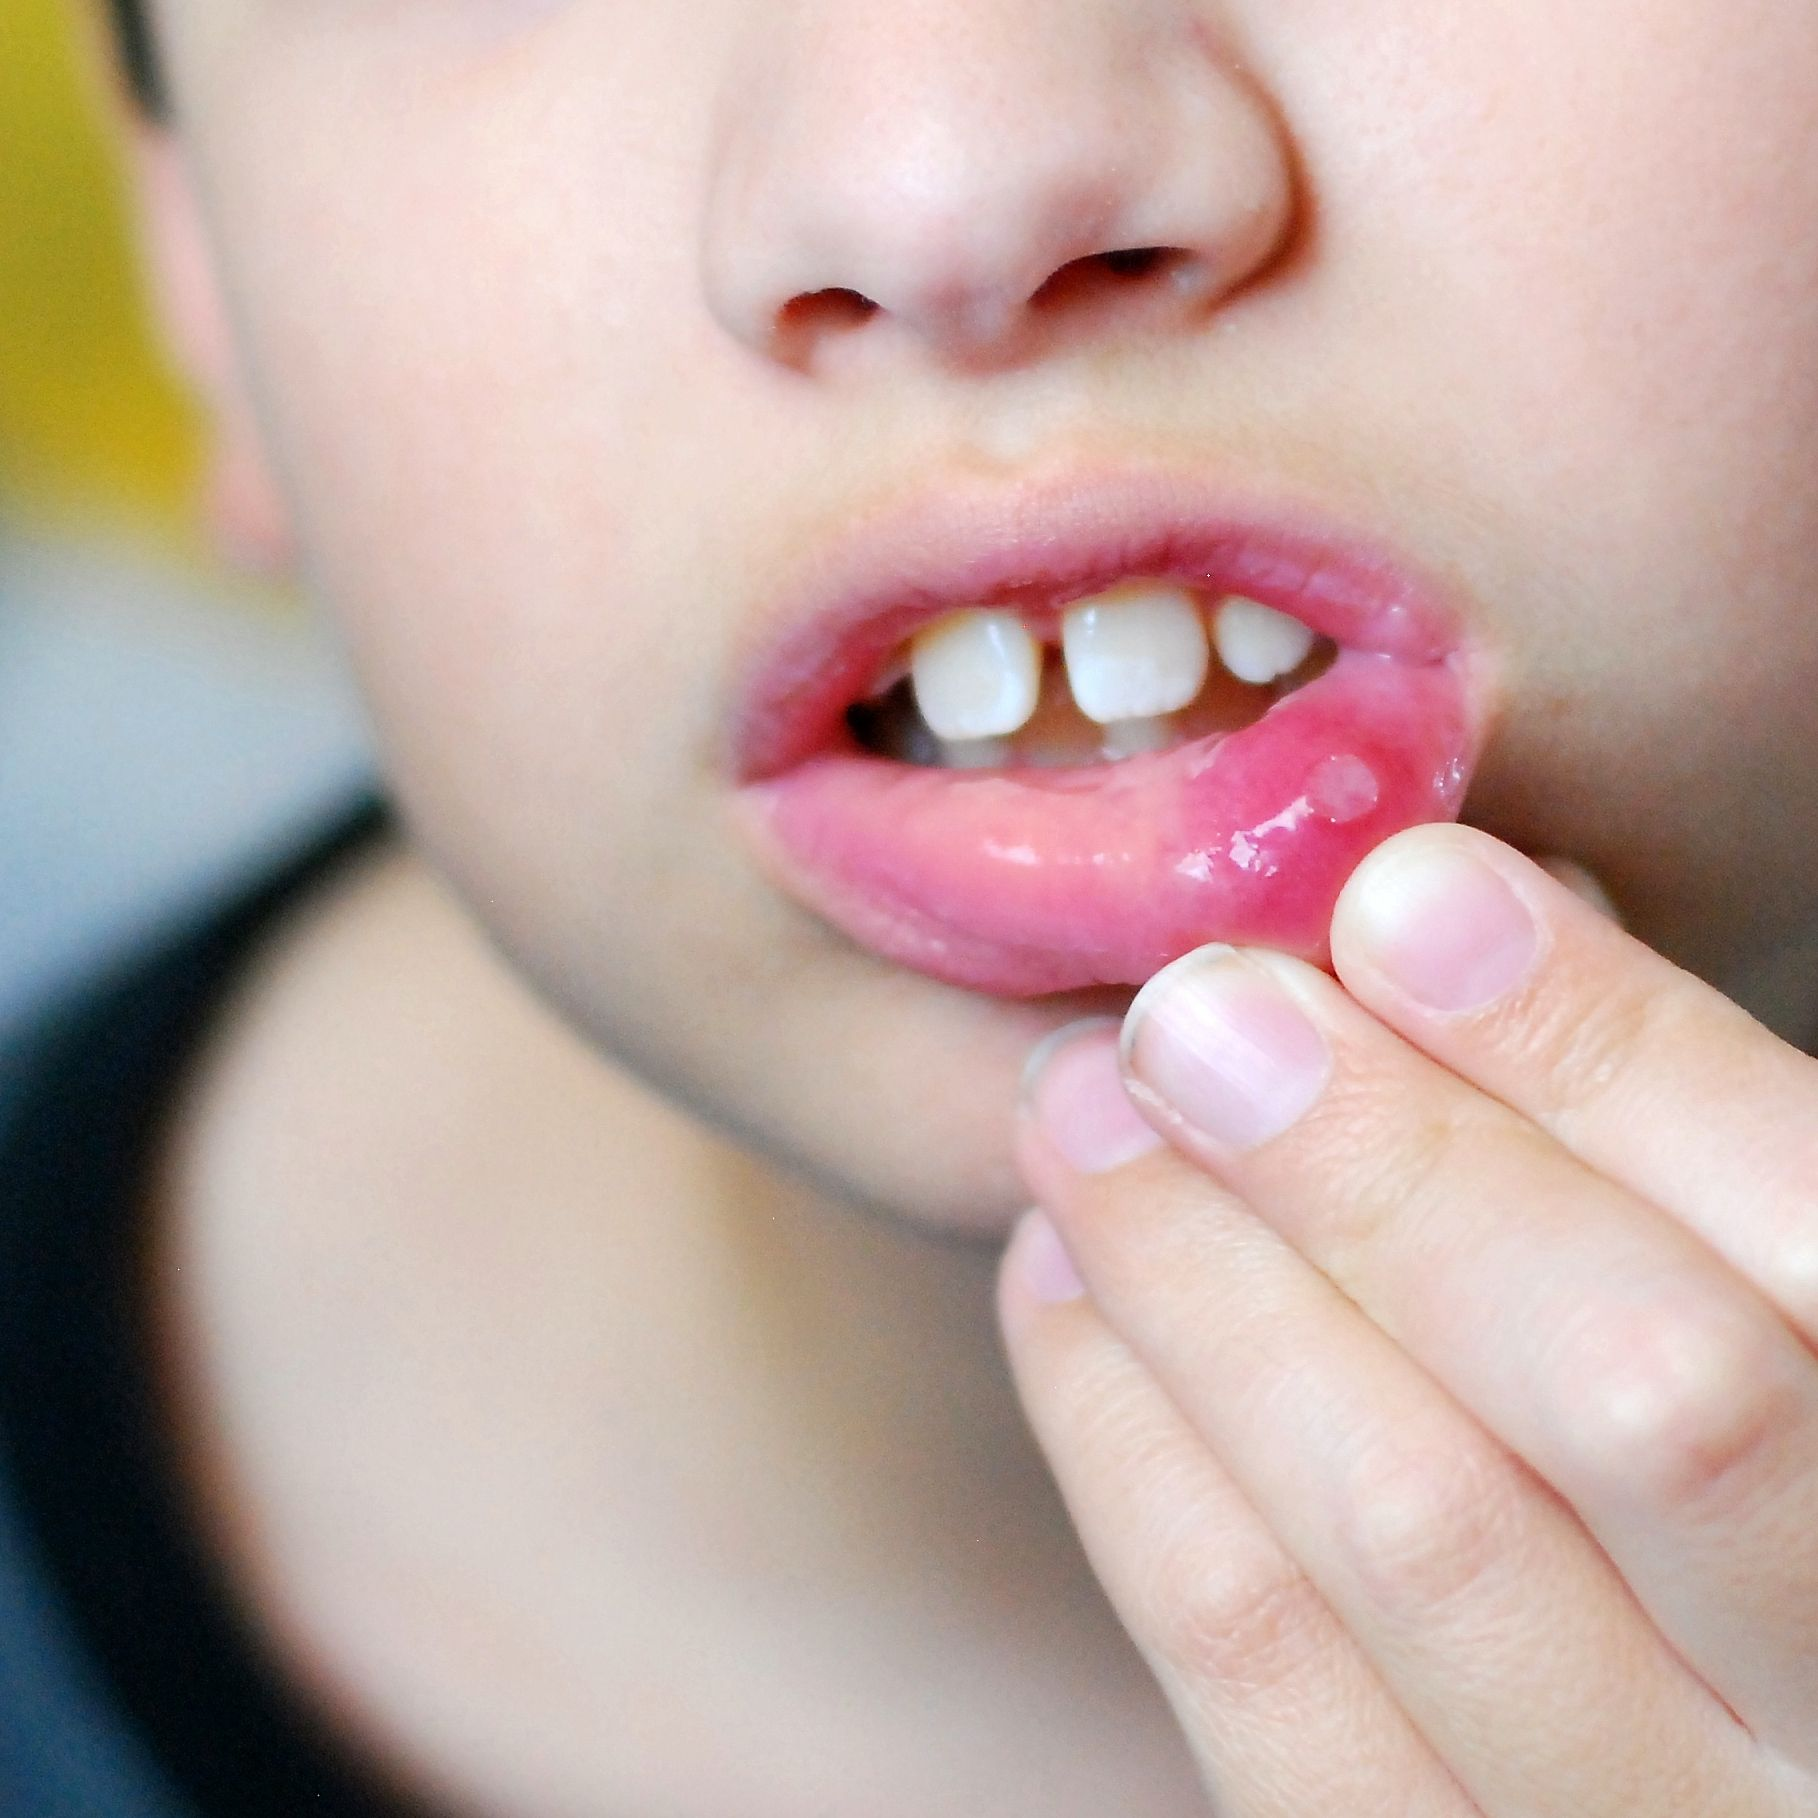 Mouth Ulcers In Children New Kids Center Mouth Ulcers